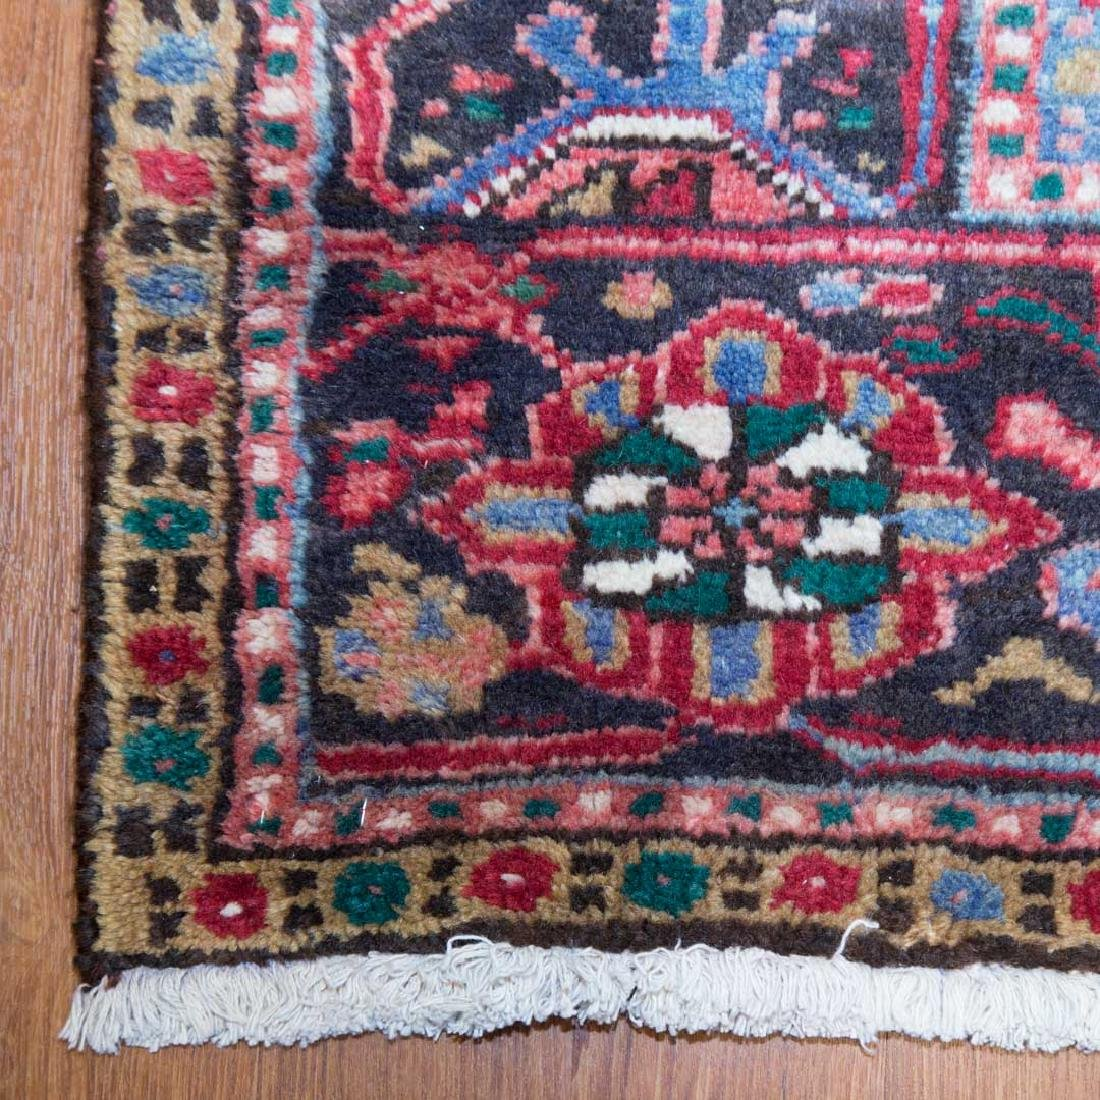 Persian Herez rug, approx. 7.7 x 11.5 - 2